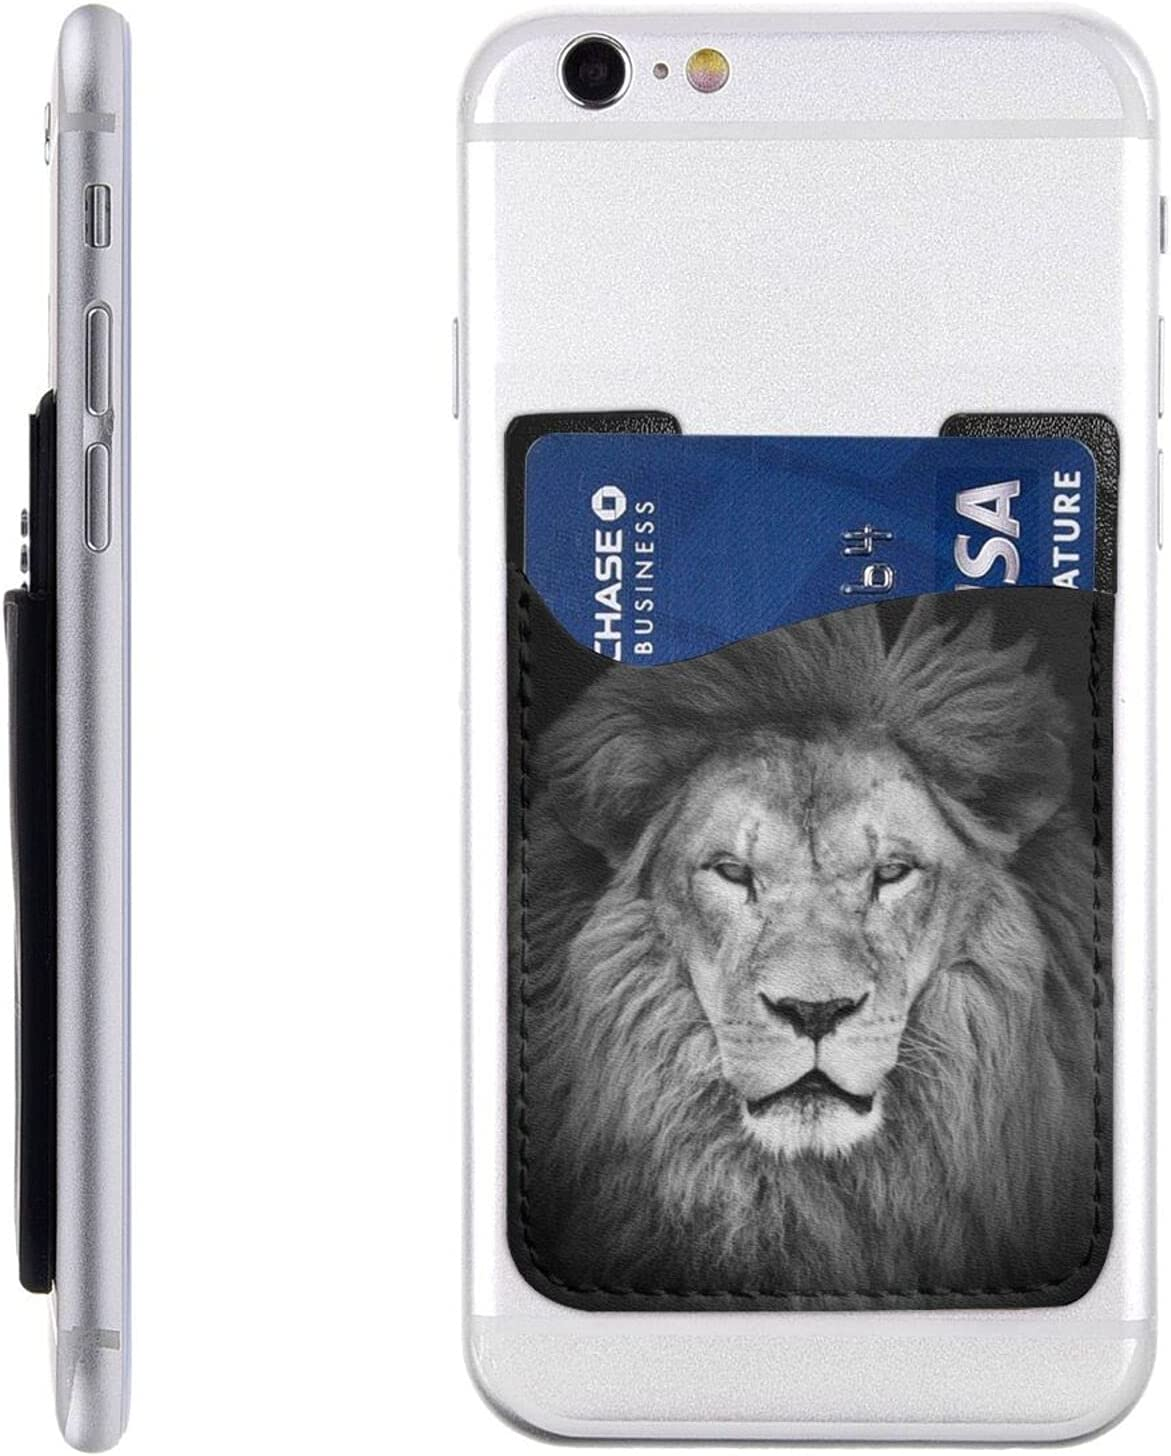 Lion Head Phone Card Holder Cell overseas On Slee Wallet Max 56% OFF Stick